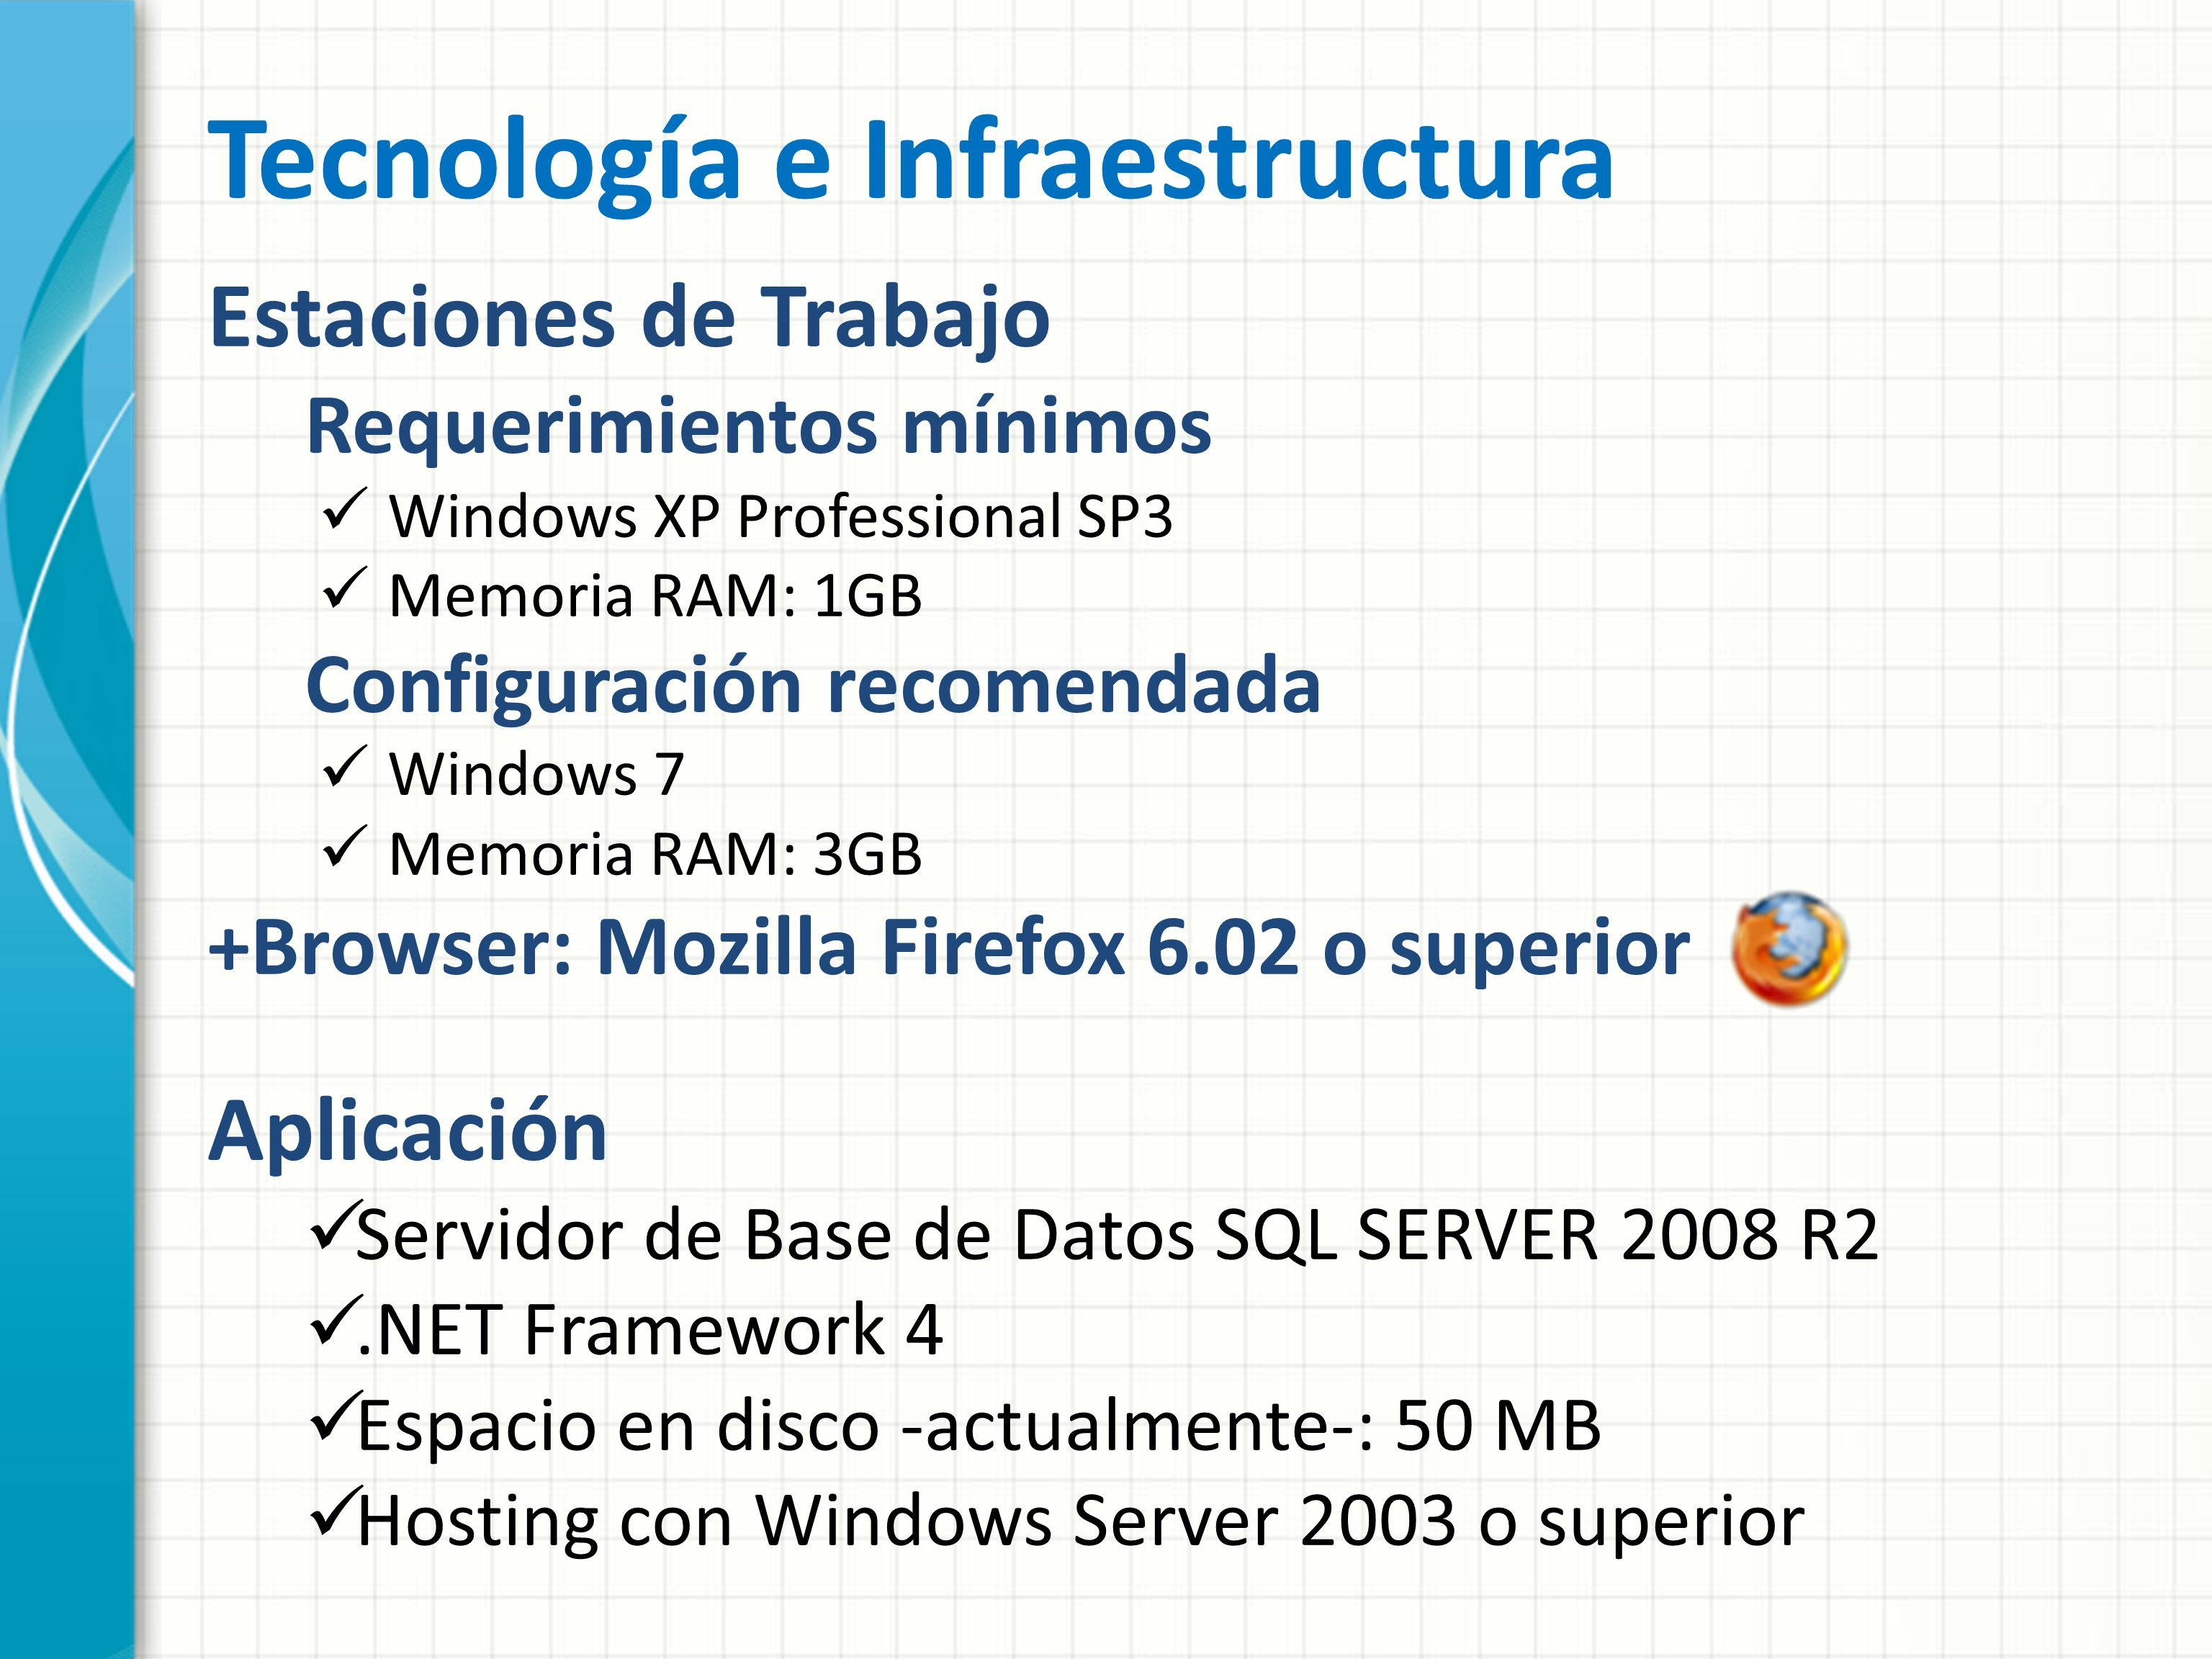 Tecnología e Infraestructura Estaciones de Trabajo Requerimientos mínimos Windows XP Professional SP3 Memoria RAM: 1GB Configuración recomendada Windows 7 Memoria RAM: 3GB +Browser: Mozilla Firefox 6.02 o superior Aplicación Servidor de Base de Datos SQL SERVER 2008 R2.NET Framework 4 Espacio en disco -actualmente-: 50 MB Hosting con Windows Server 2003 o superior